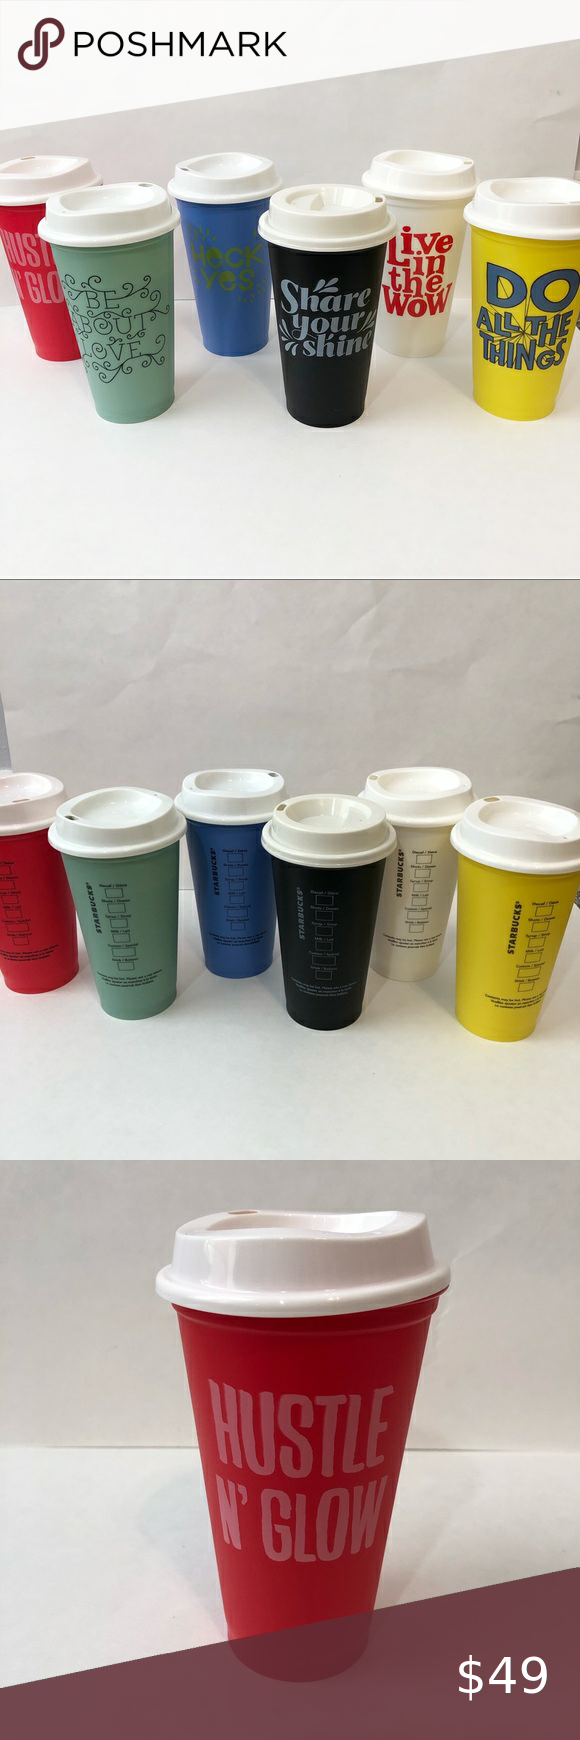 Starbucks plastic reusable coffee cup 16oz lot in 2020